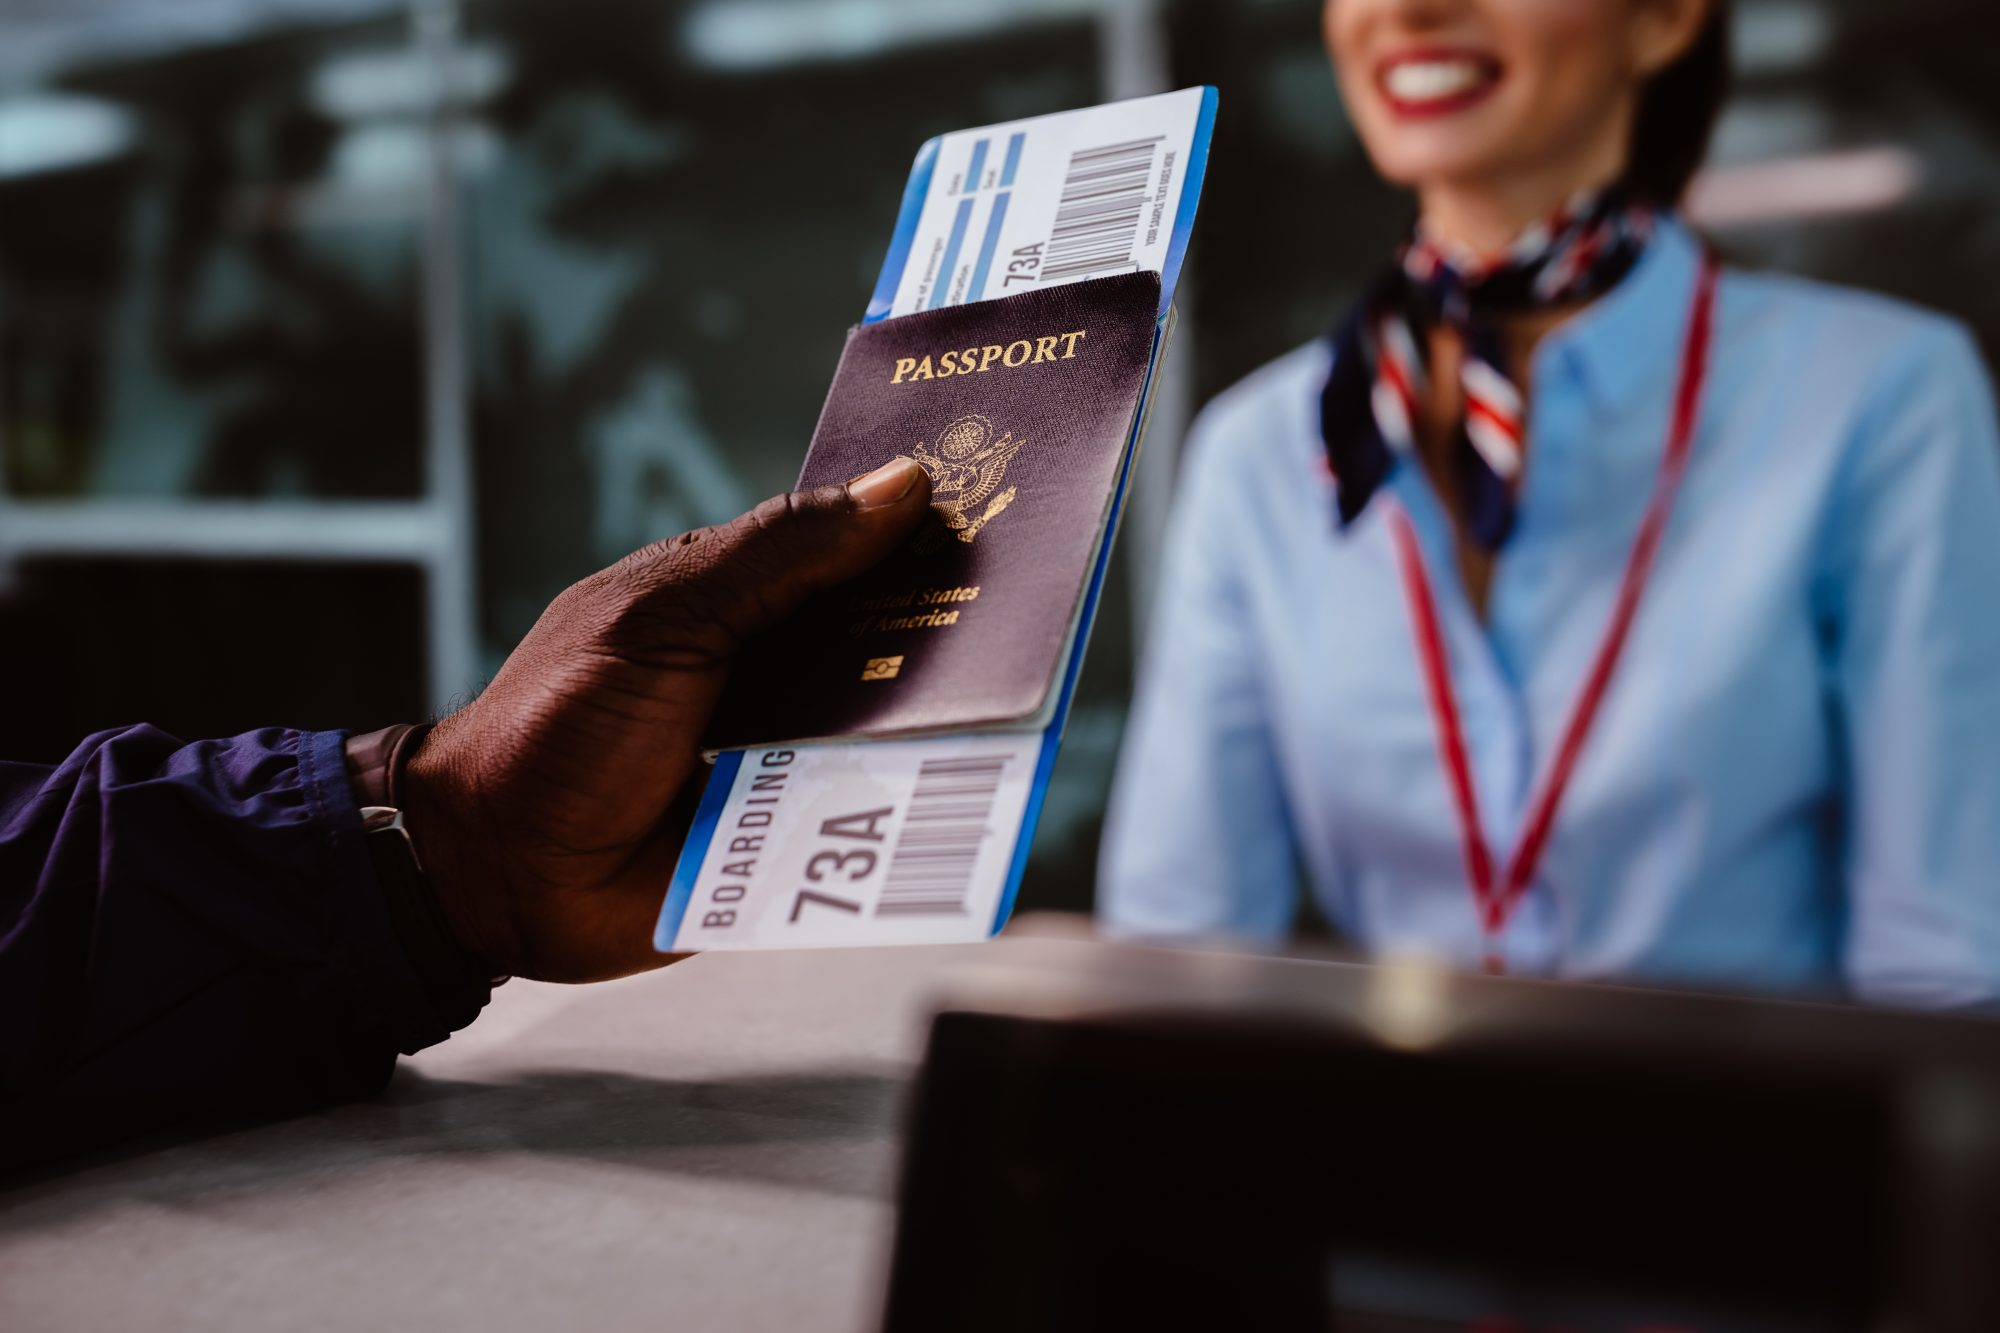 Scammers Can Use Your Boarding Pass to Access Important Personal Information